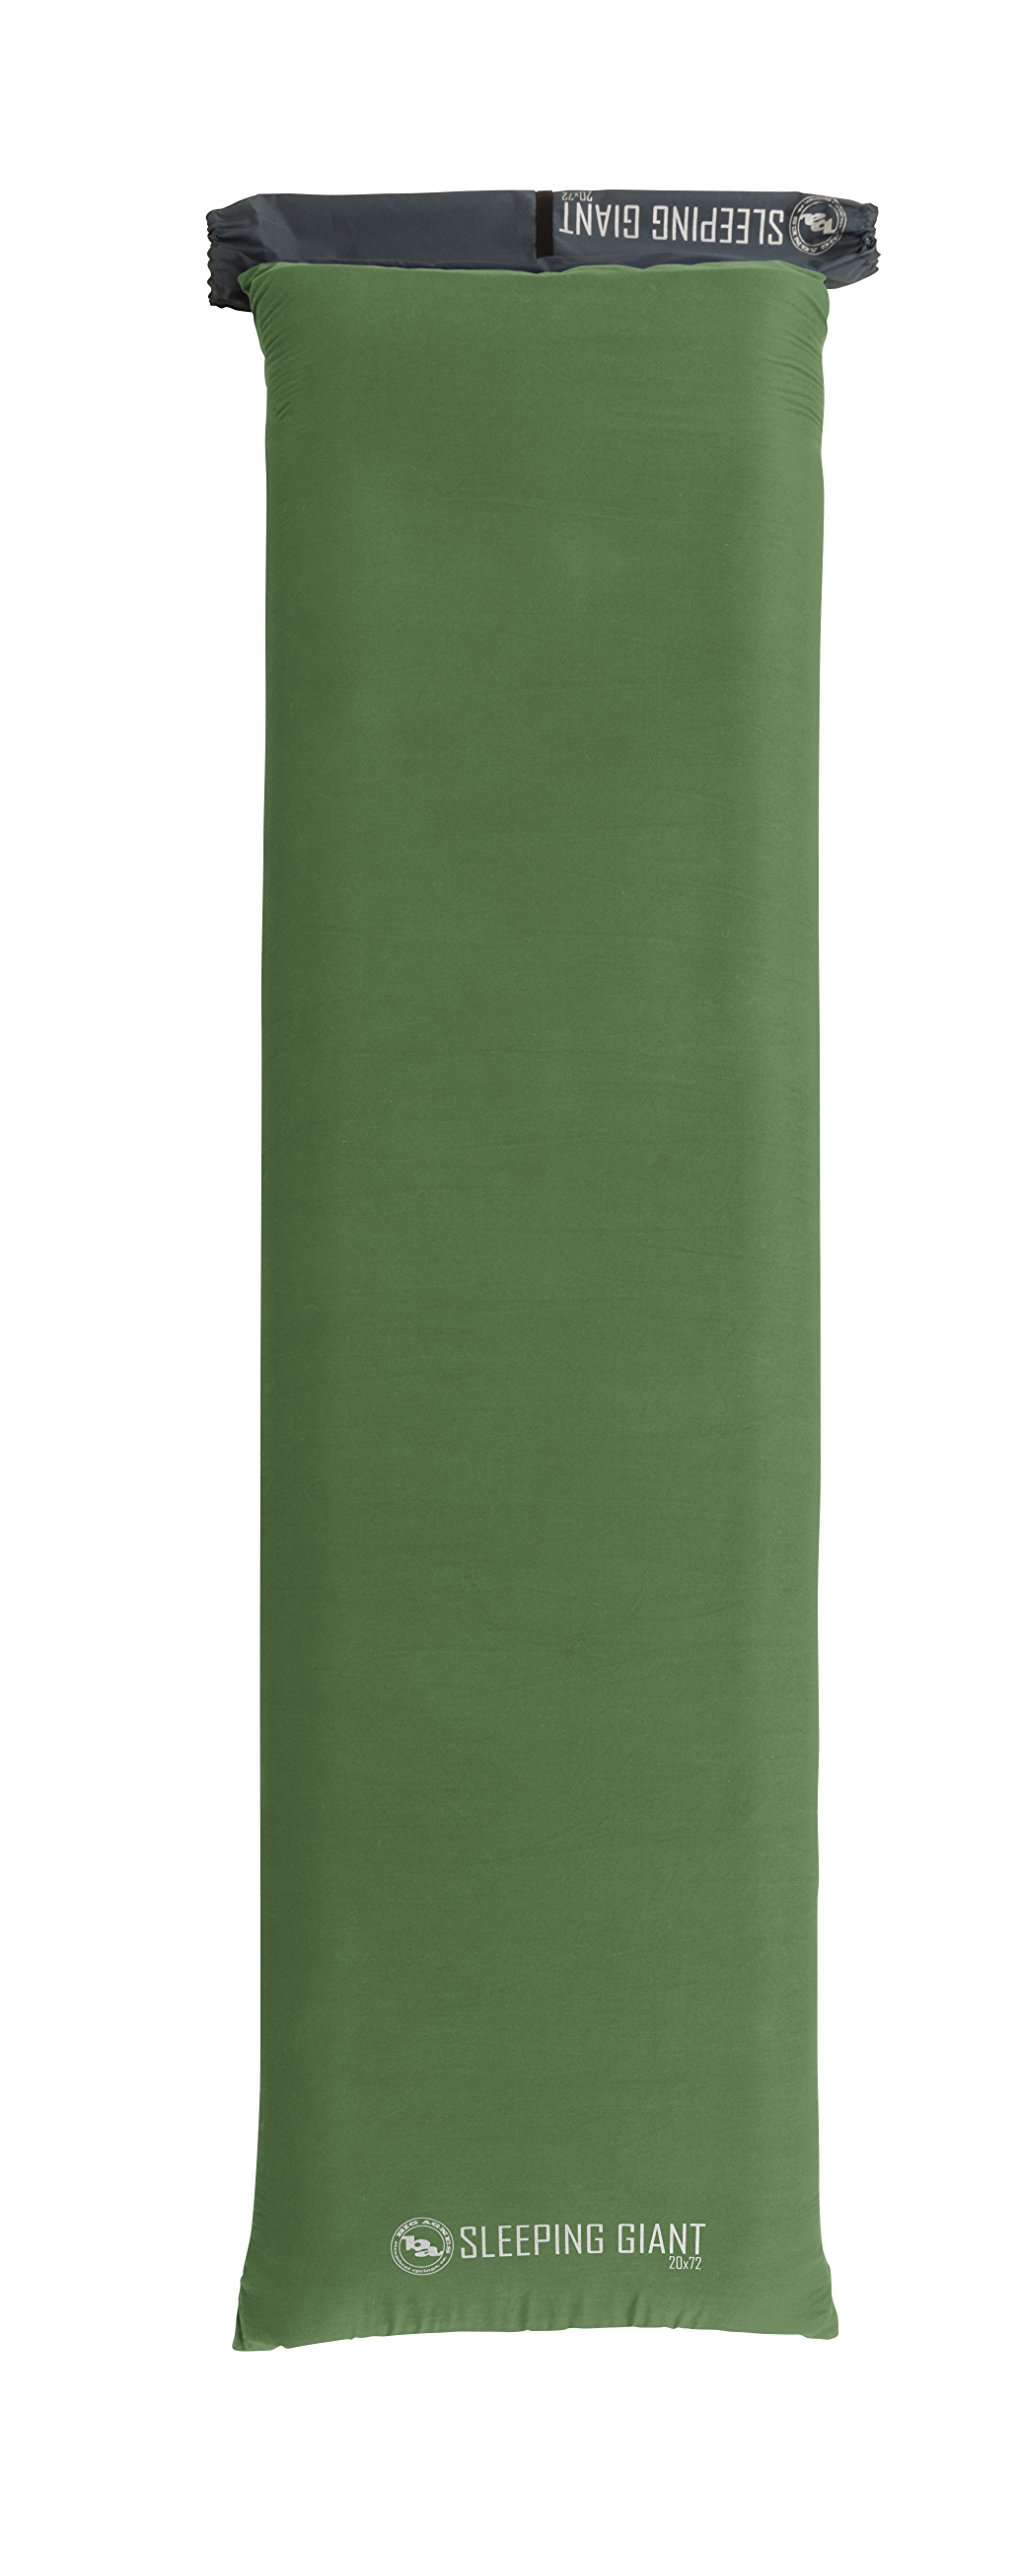 Big Agnes Sleeping Giant Memory Foam Pad Cover, Green/Blue, 25x72 Wide Regular by Big Agnes